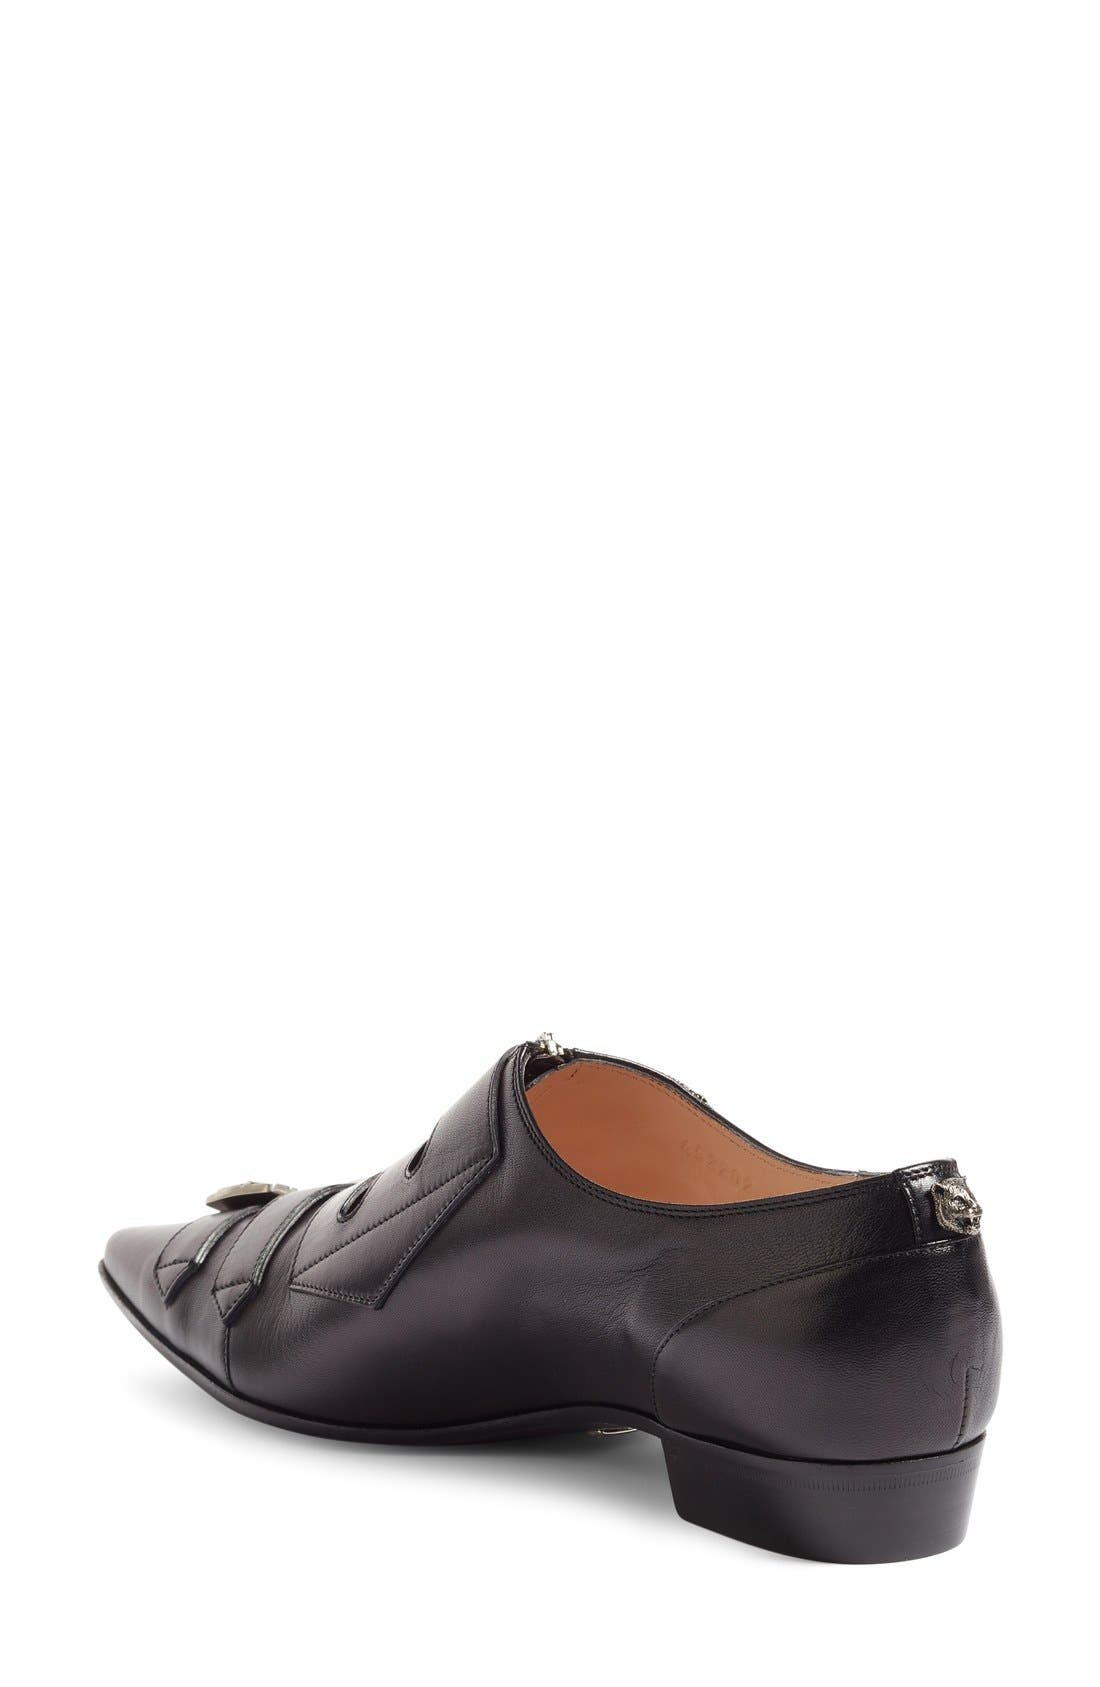 Susan Buckle Pointy Toe Loafer,                             Alternate thumbnail 2, color,                             Black Leather